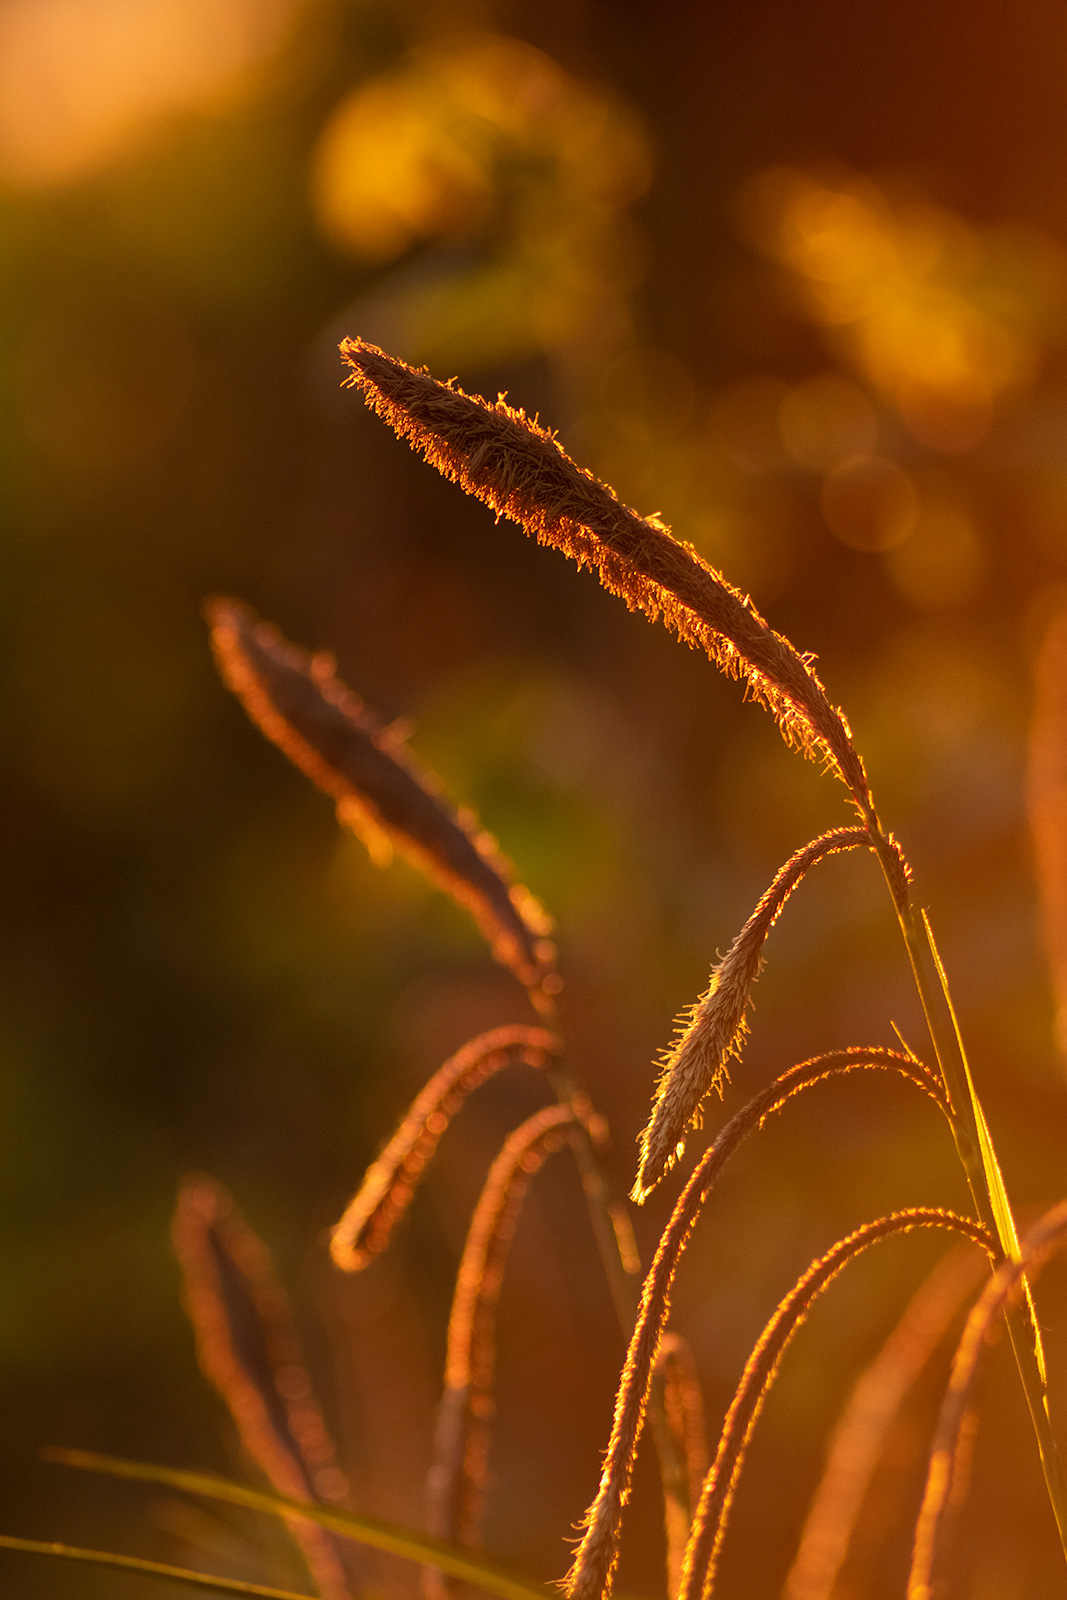 Flowering grass heads in golden hour evening sun, abstract closeup nature photography West Sussex UK ©P. Maton 2019 eyeteeth.net